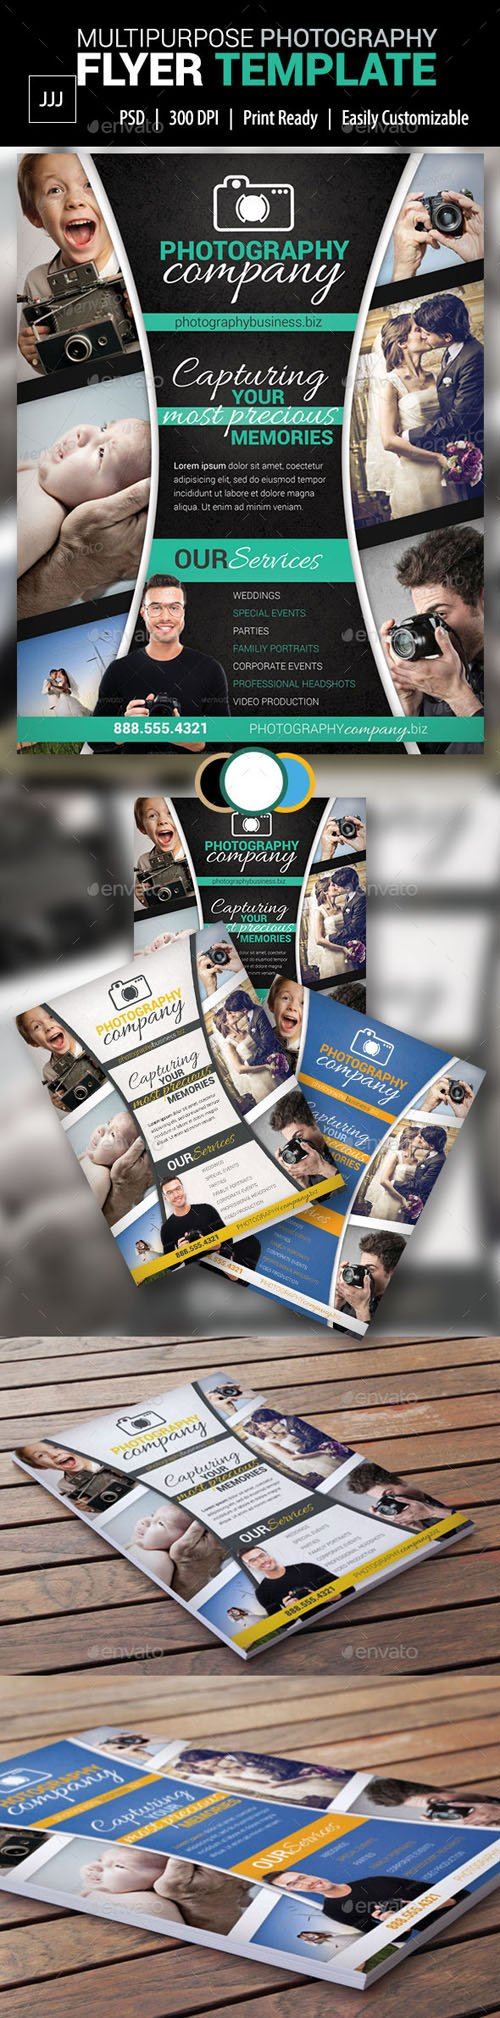 Photography Business Flyer 14 - Graphicriver 10057903